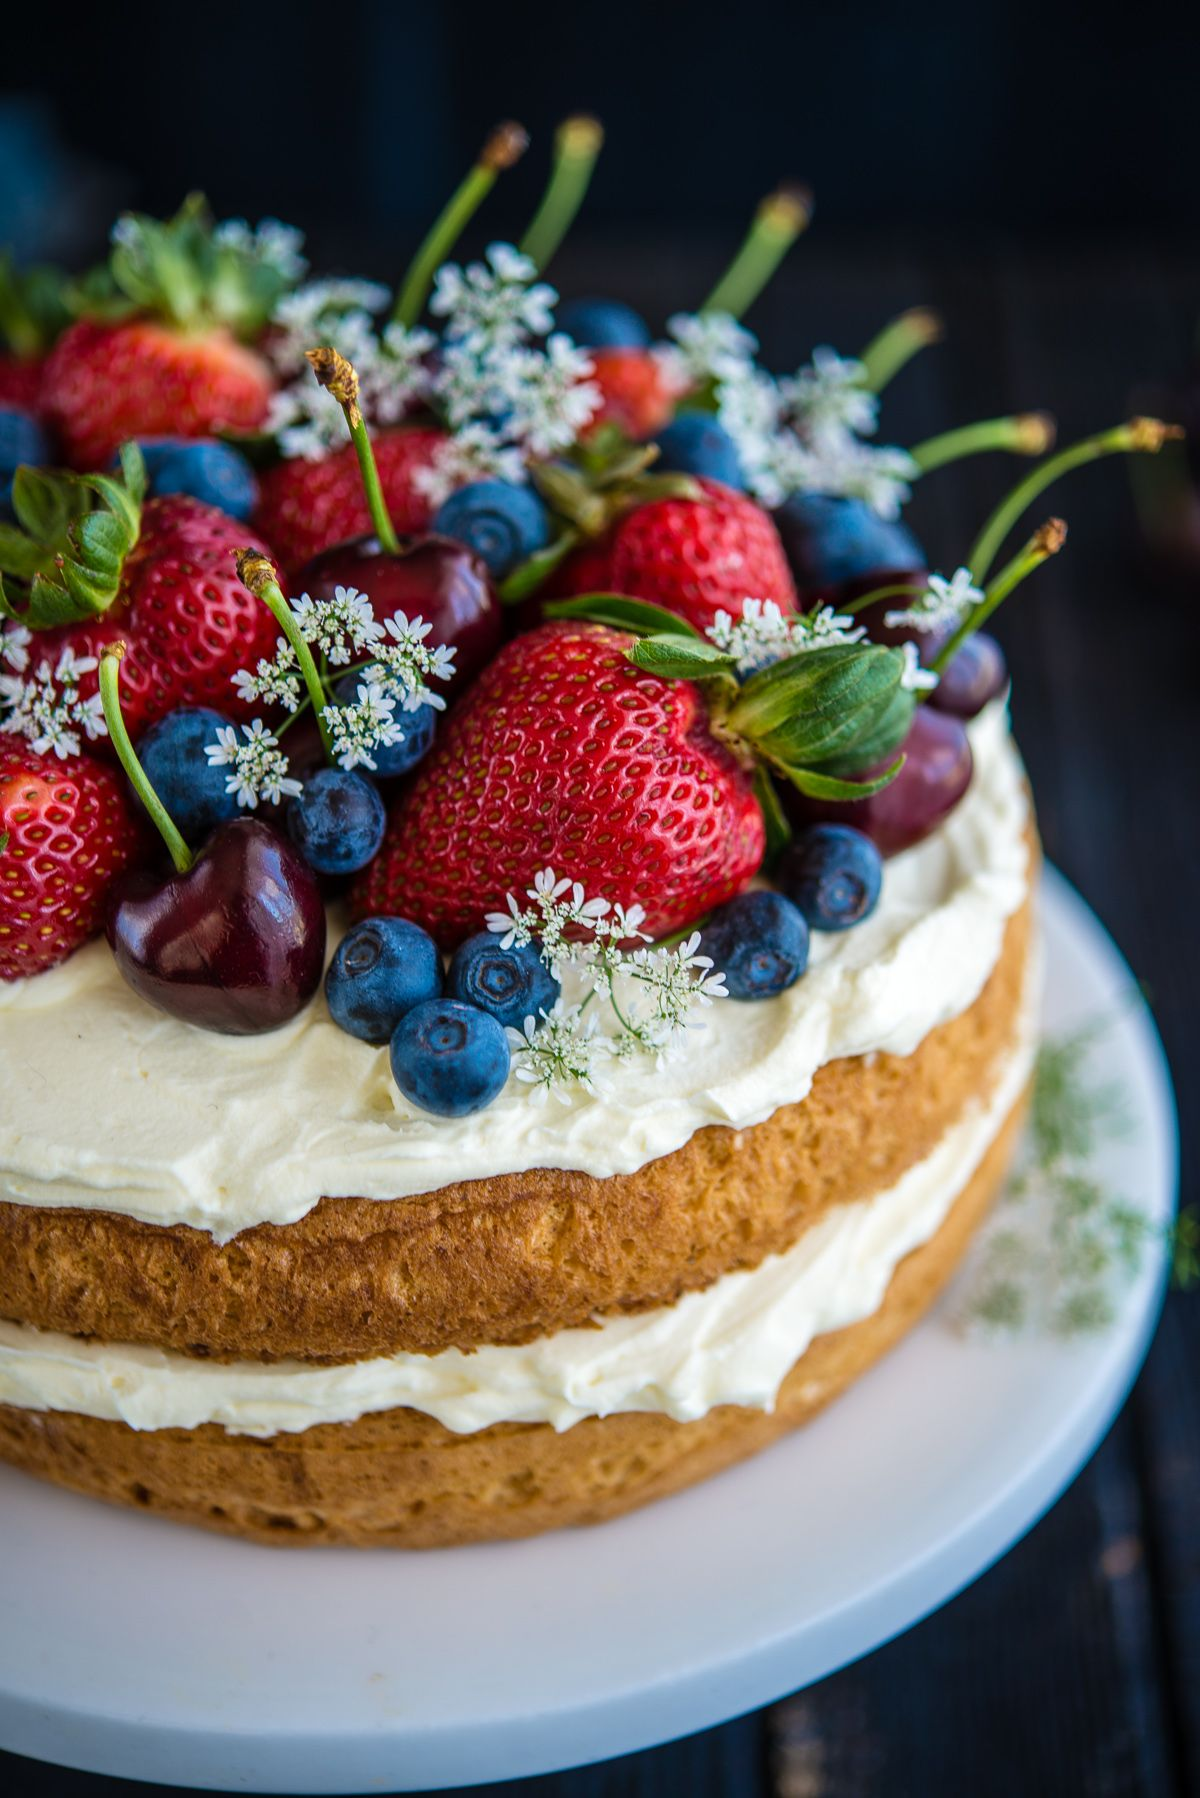 We Re In Love With This Beautiful Salute To Berries And